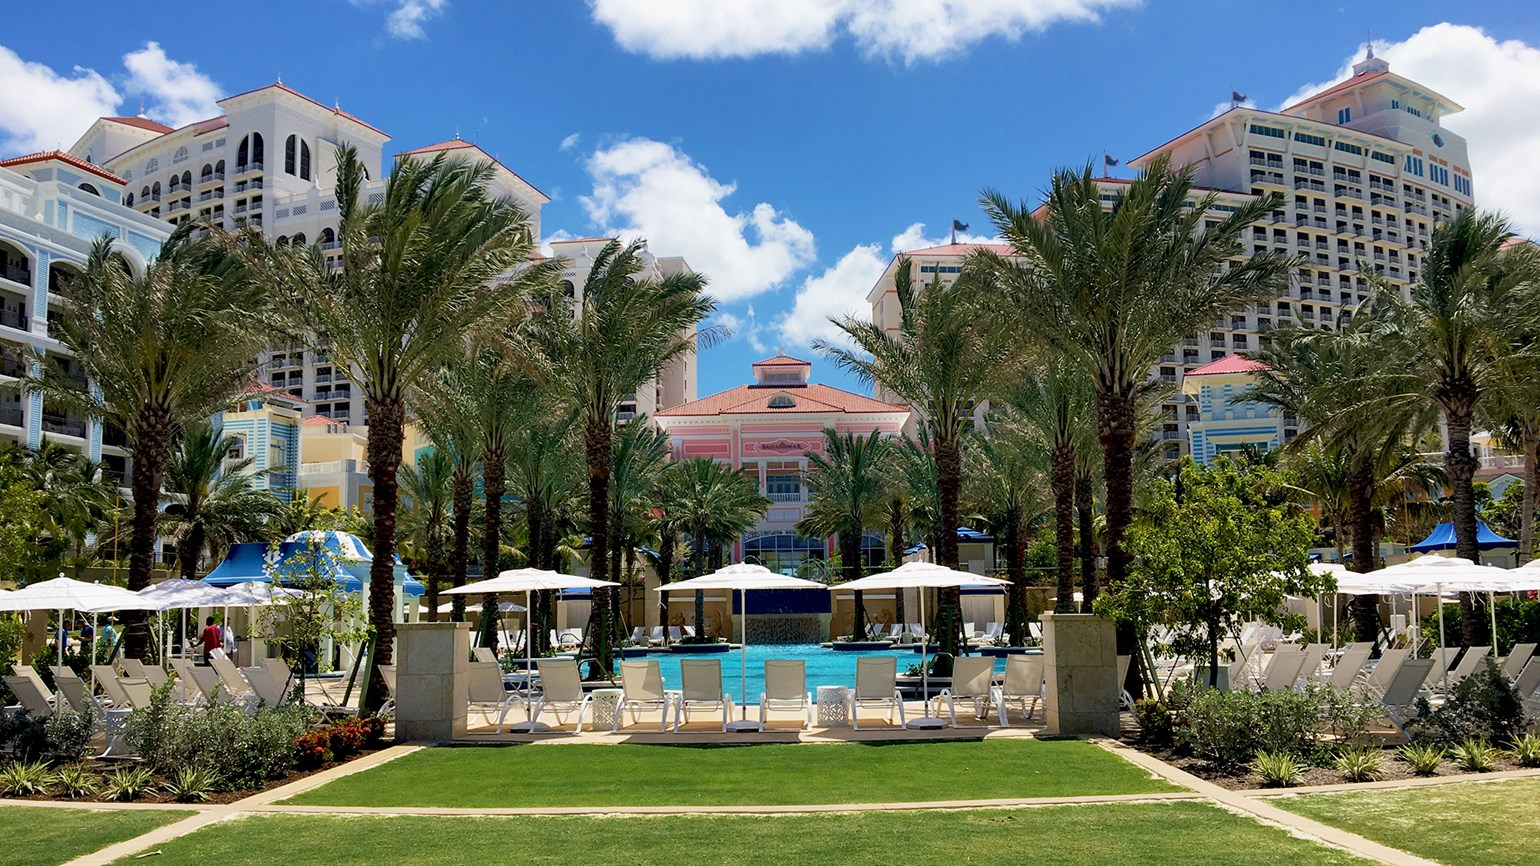 Opening day has finally arrived for Baha Mar